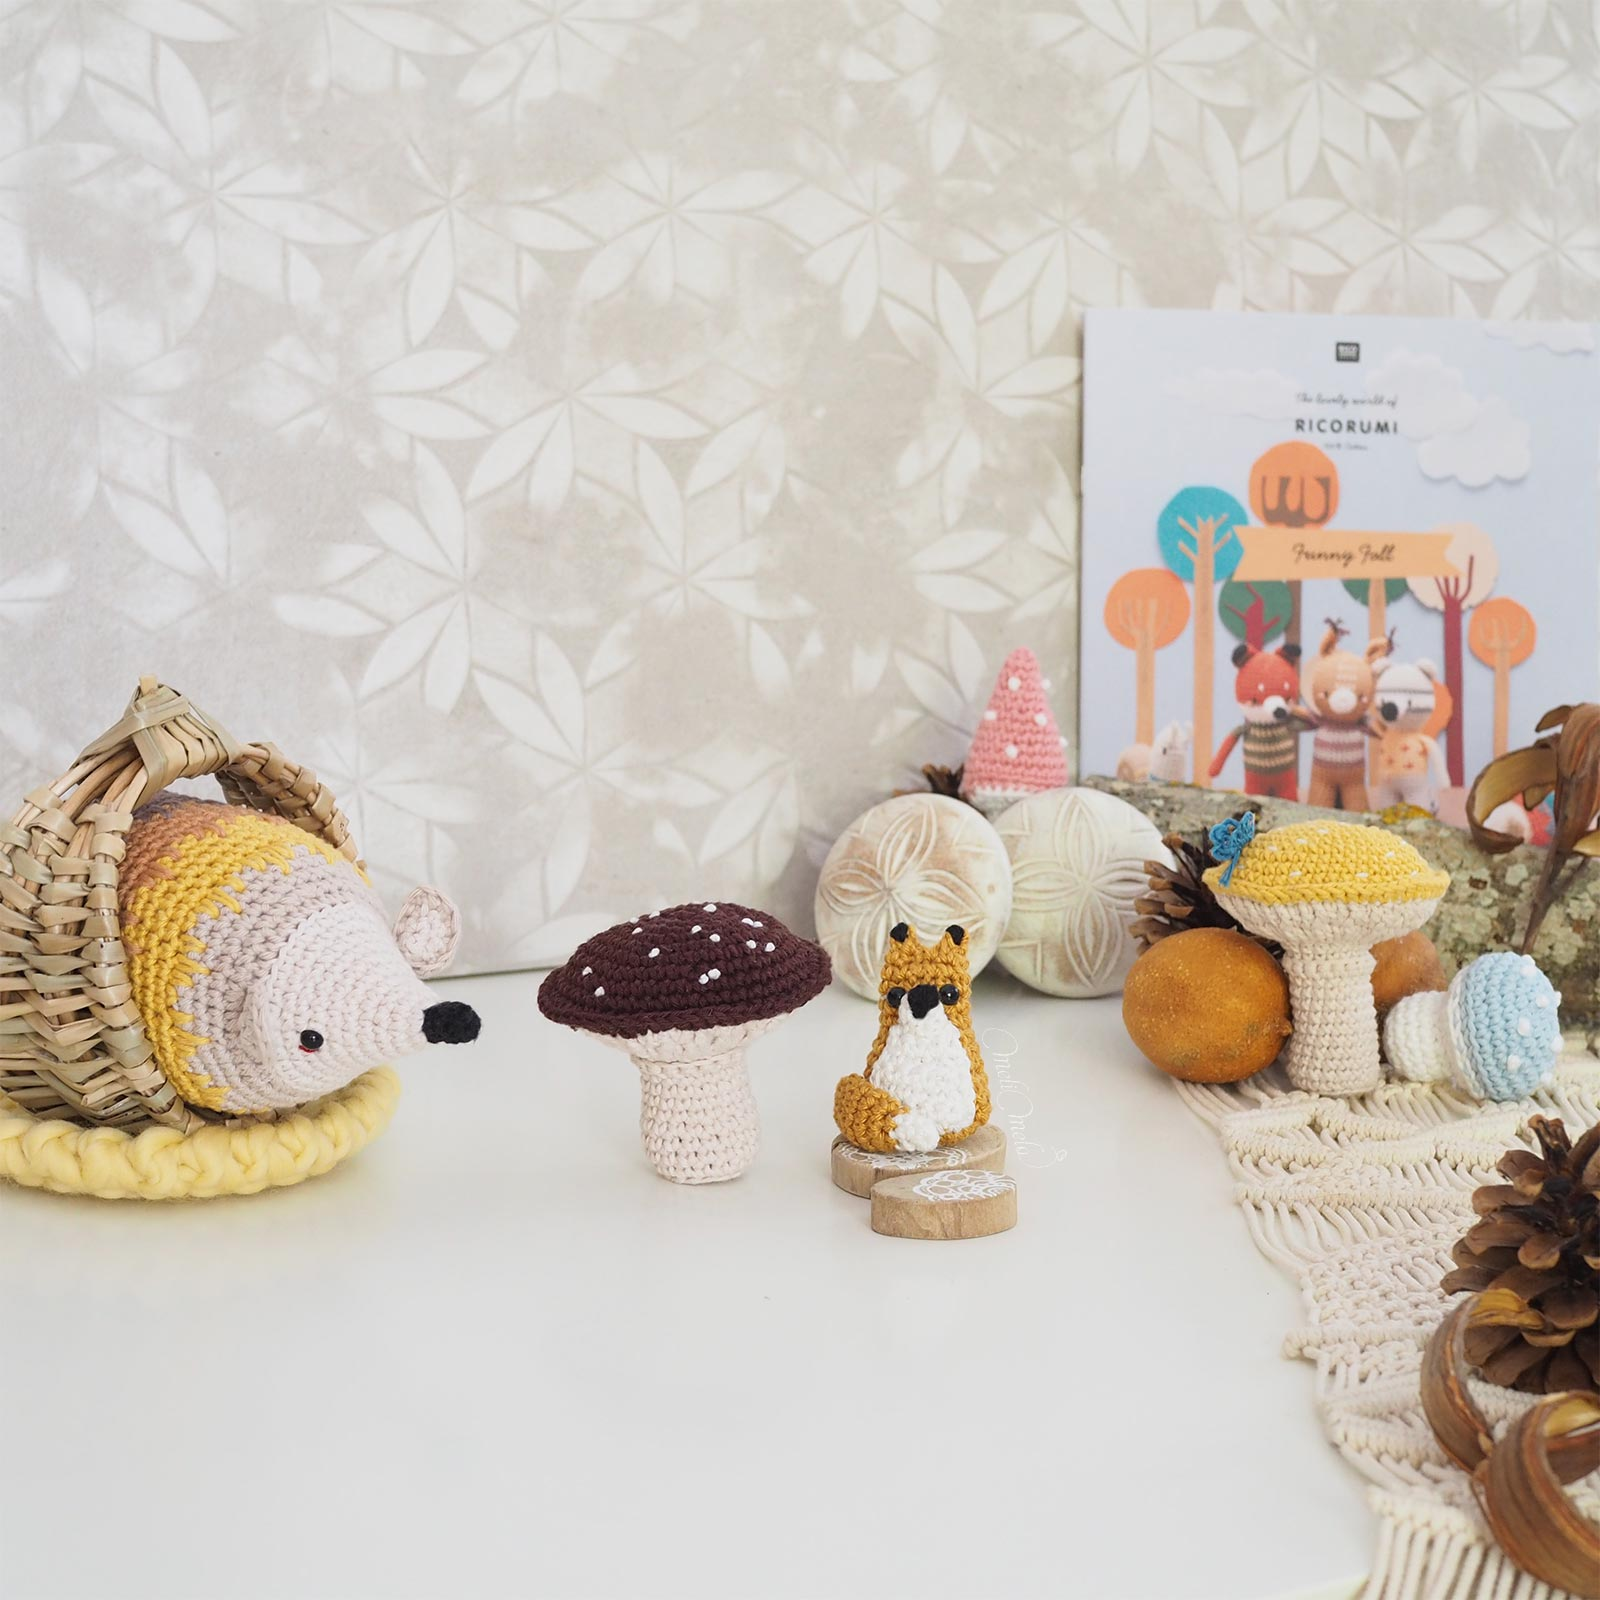 automne-herisson-renard-hedgehog-fox-ricorumi-fall-love-crochet-booklet-laboutiquedemelimelo